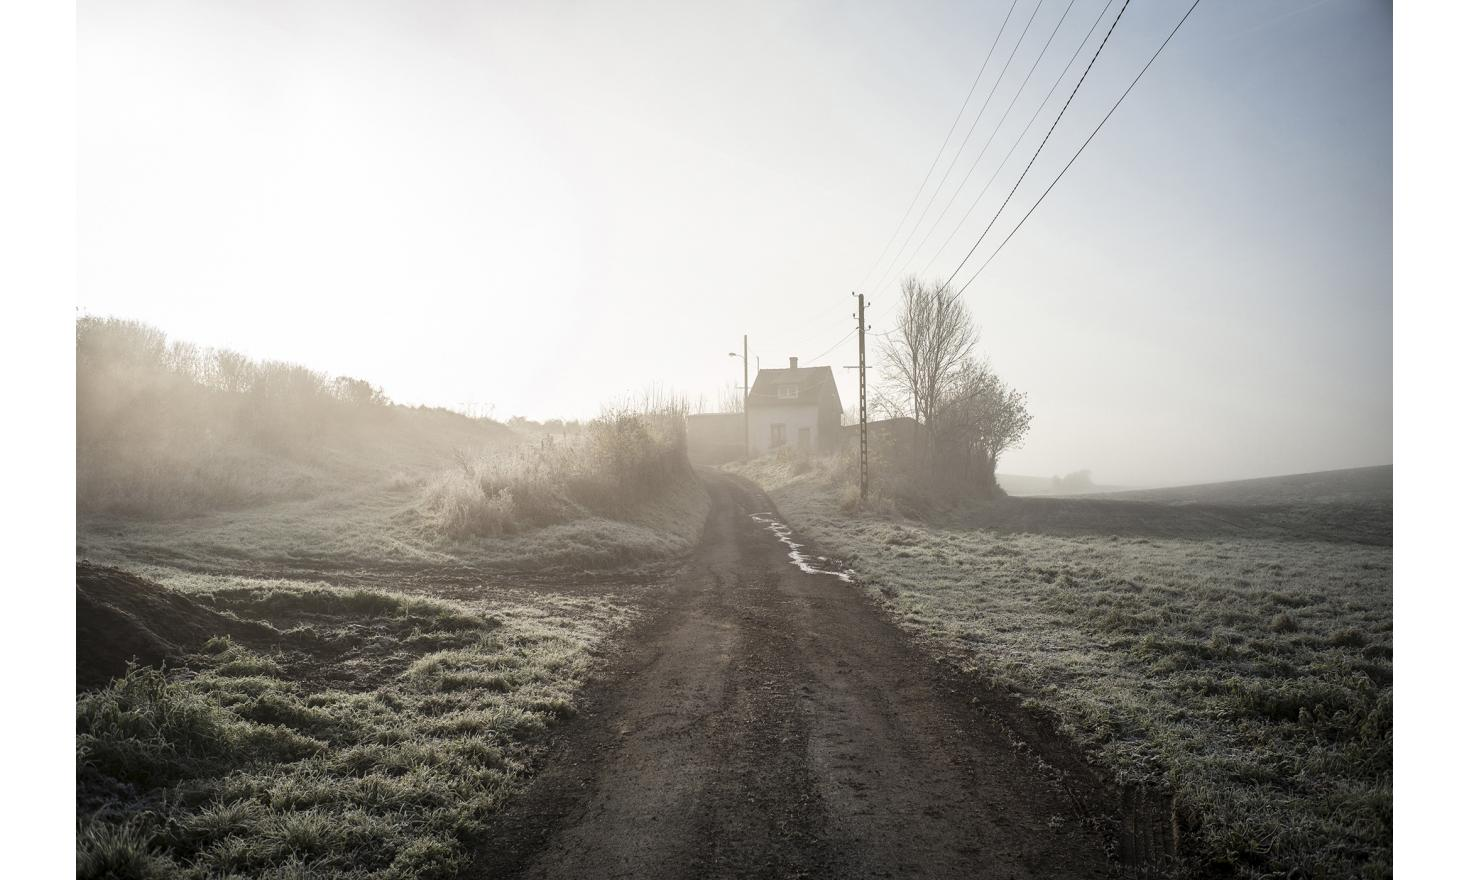 Landscapes of the Somme region.